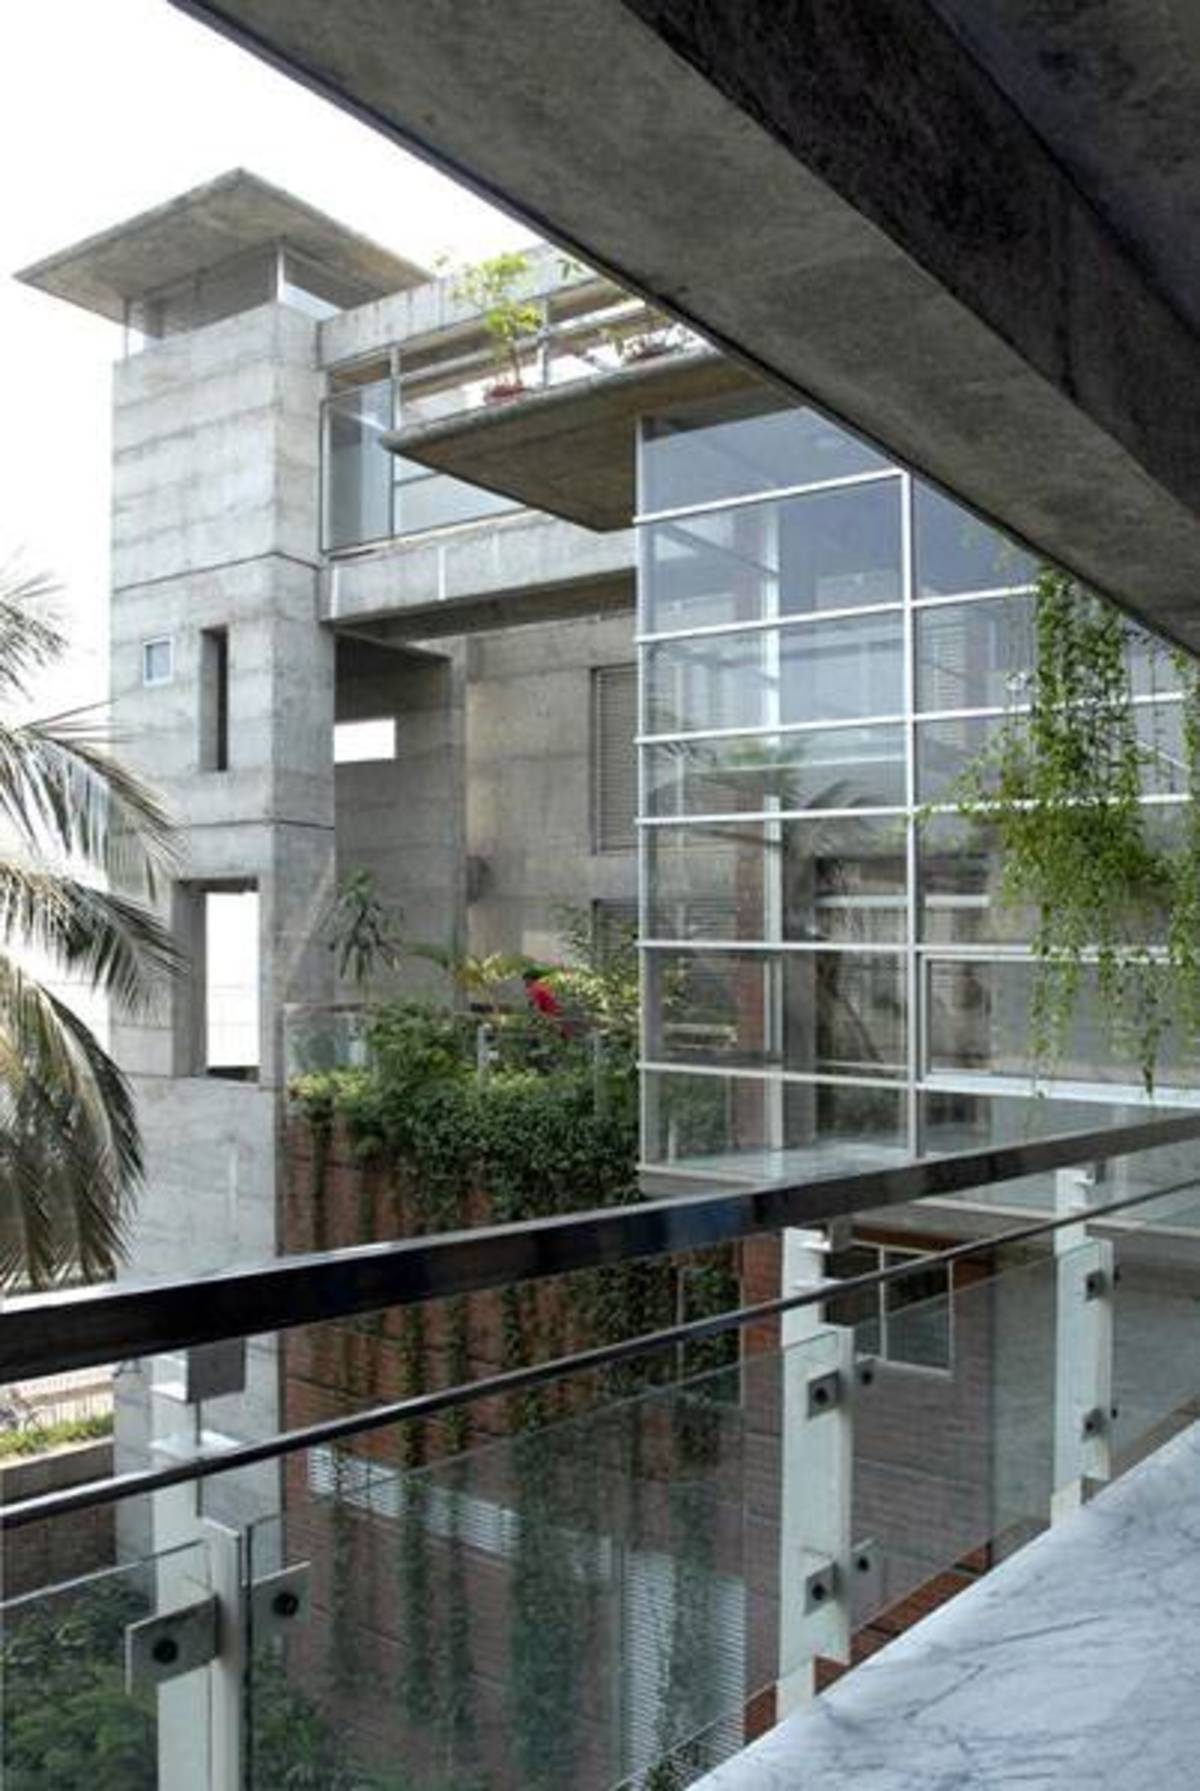 Shatotto: Meghna residence in Bangladesh